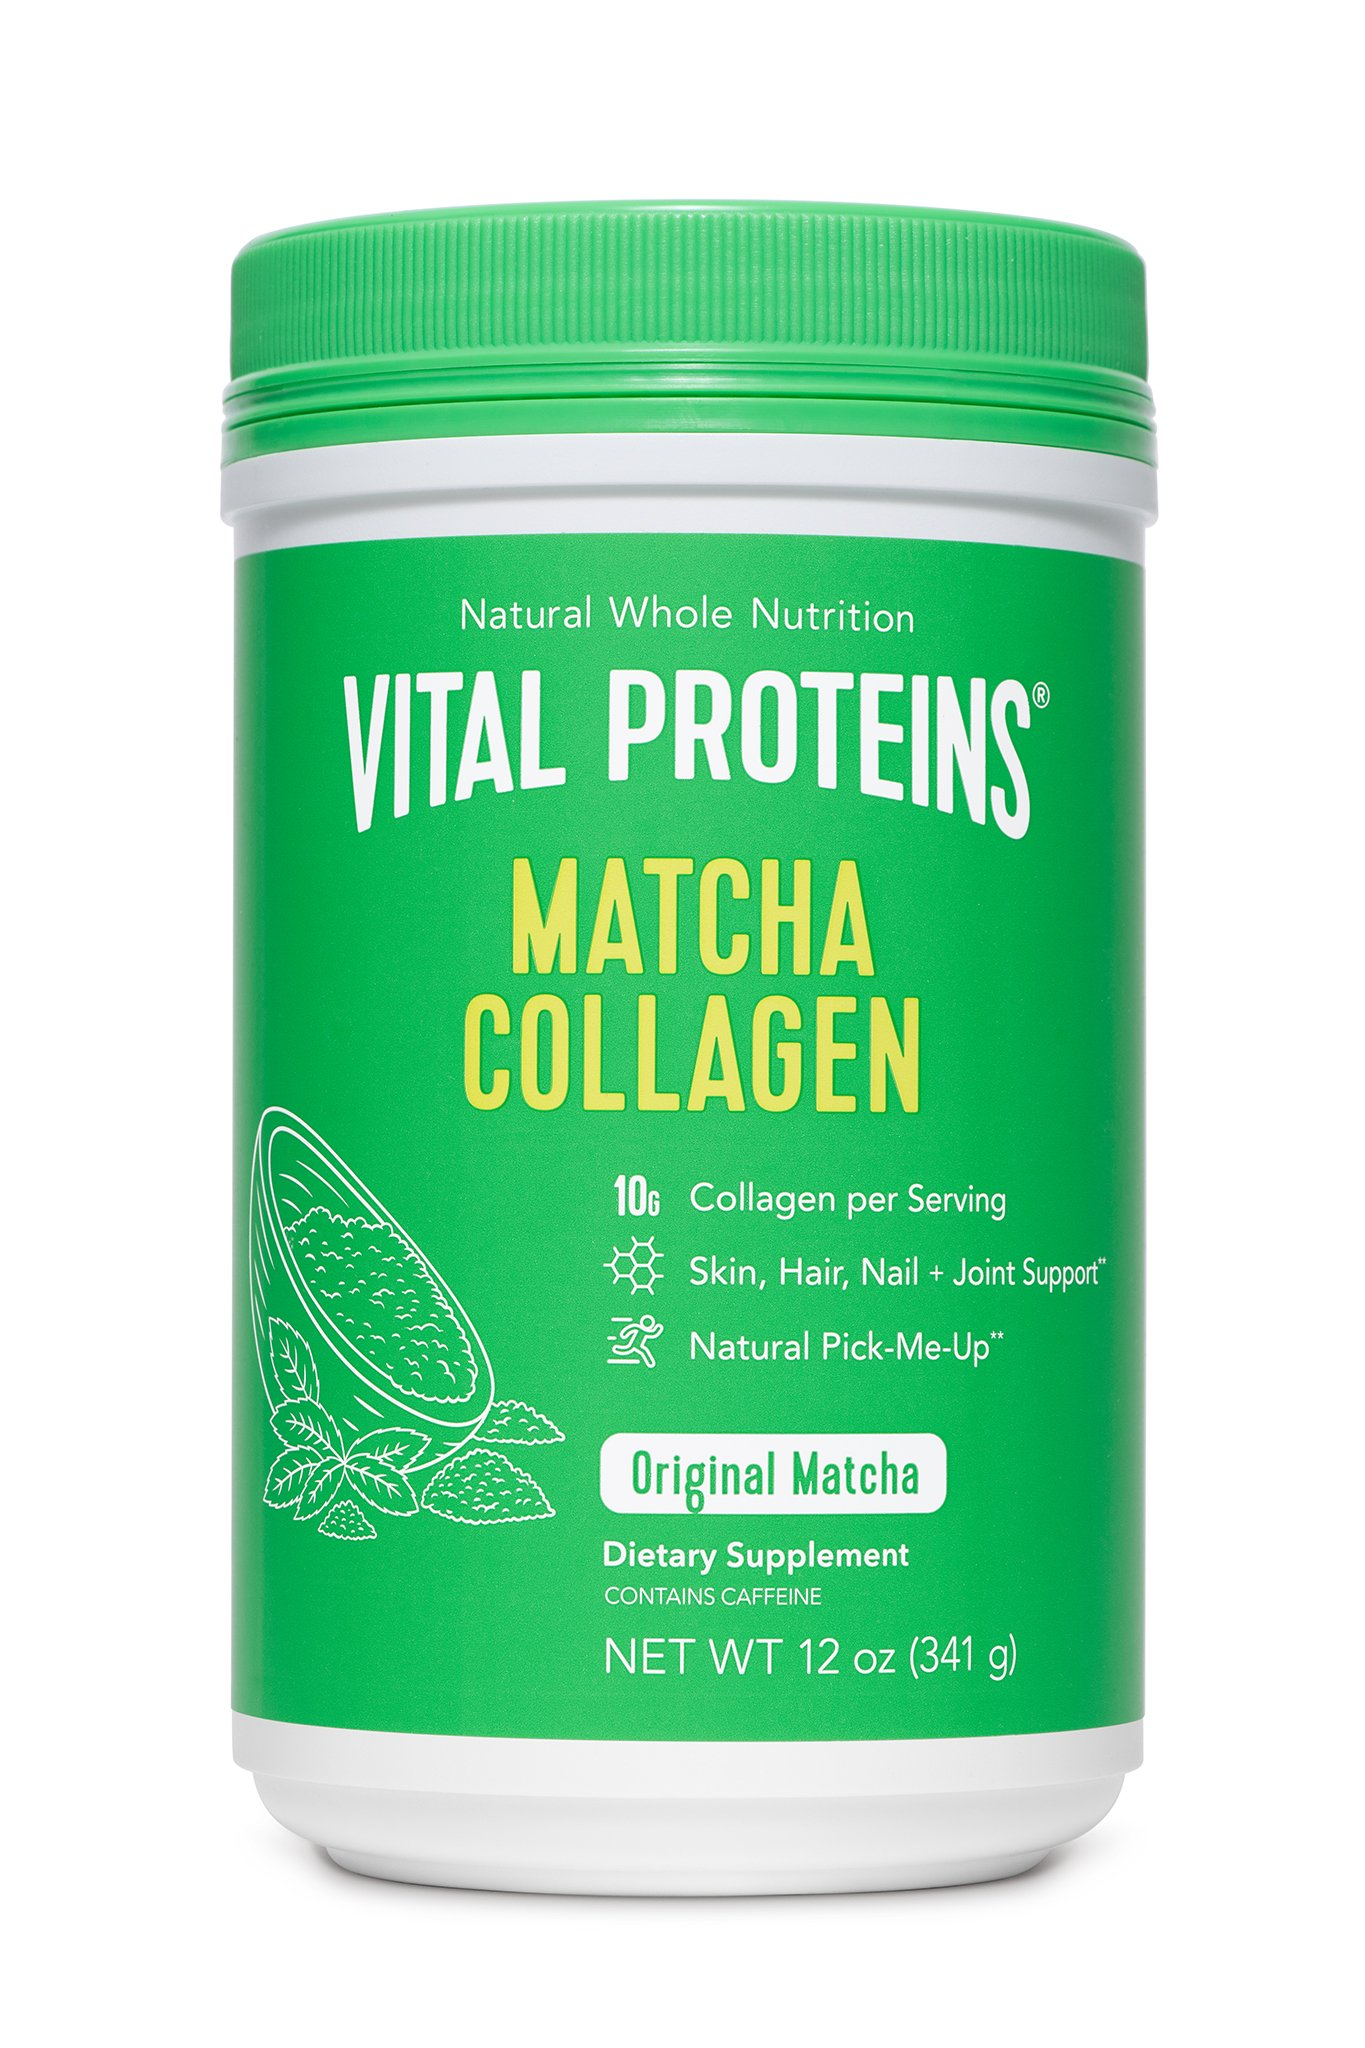 I use this  Matcha Collagen Powder  every day to make the perfect morning drink. I love it iced and hot, and the alert calm feeling it provides from high levels of L-theanine (no caffeine jitters). The collagen in this has dramatically improved my skin and is a part of my Healthy Strong Gut Routine. The Matcha is full of powerful antioxidants that support healthy aging, fight cancer and other disease, helps detox the body, supports healthy hormones, burn fat and help with weight loss by boosting metabolism and the list goes on!! I love this stuff with a passion and know you will too!  Check it out here!